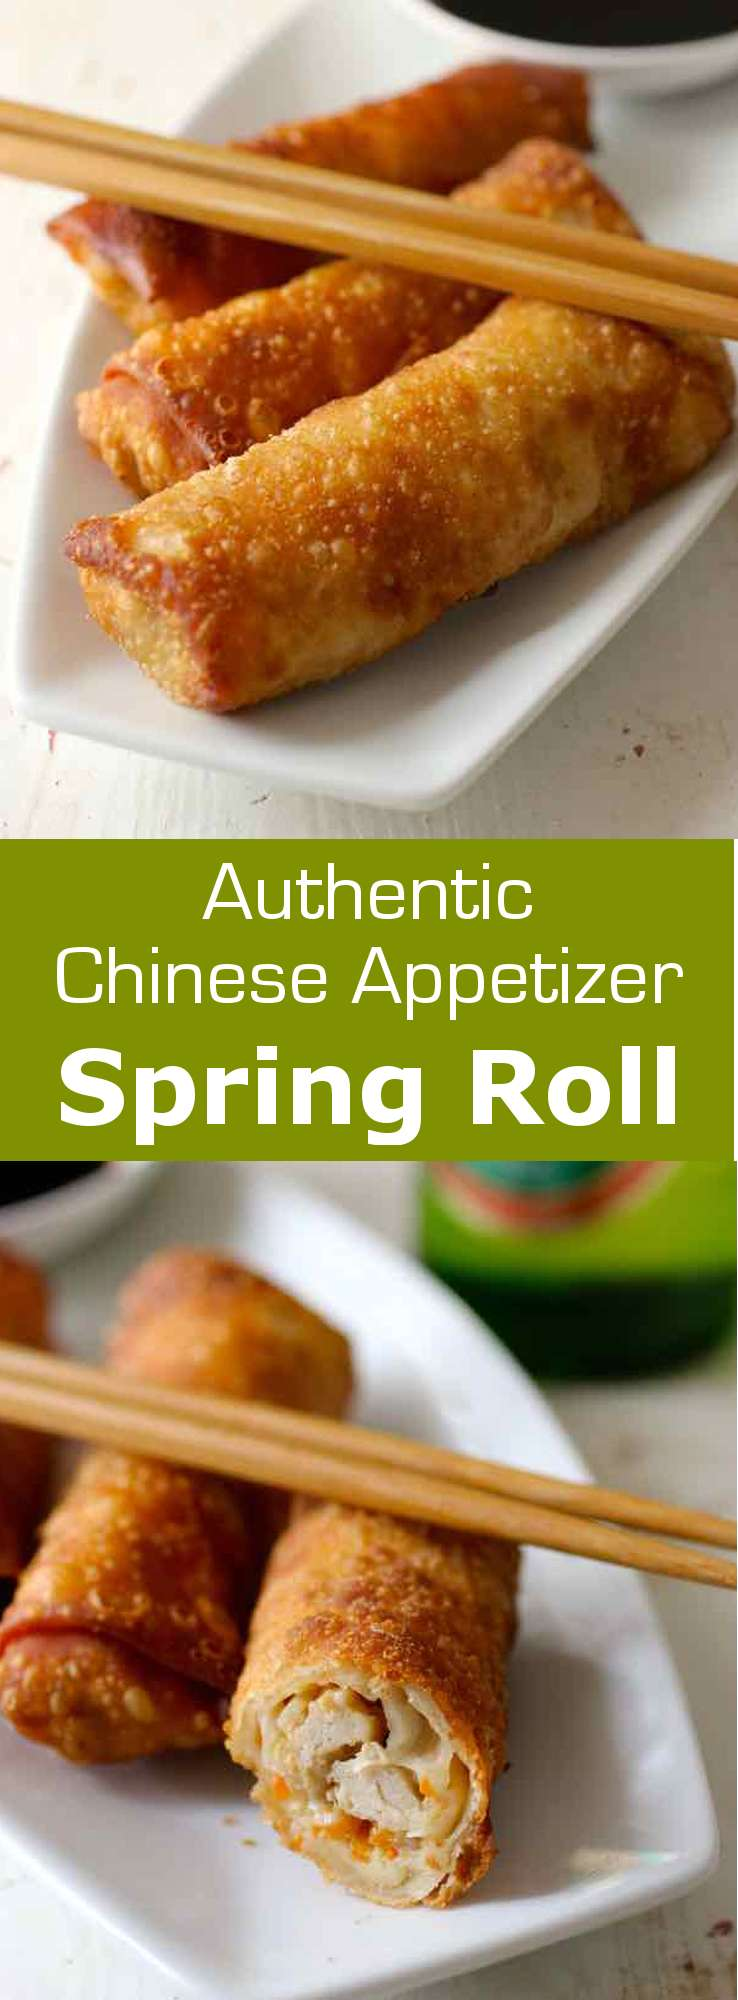 Spring rolls are traditional Southeast Asian appetizers that can be served non-fried or fried. The fried version is also known as egg rolls in the US. #Chinese #ChineseNewYear #196flavors